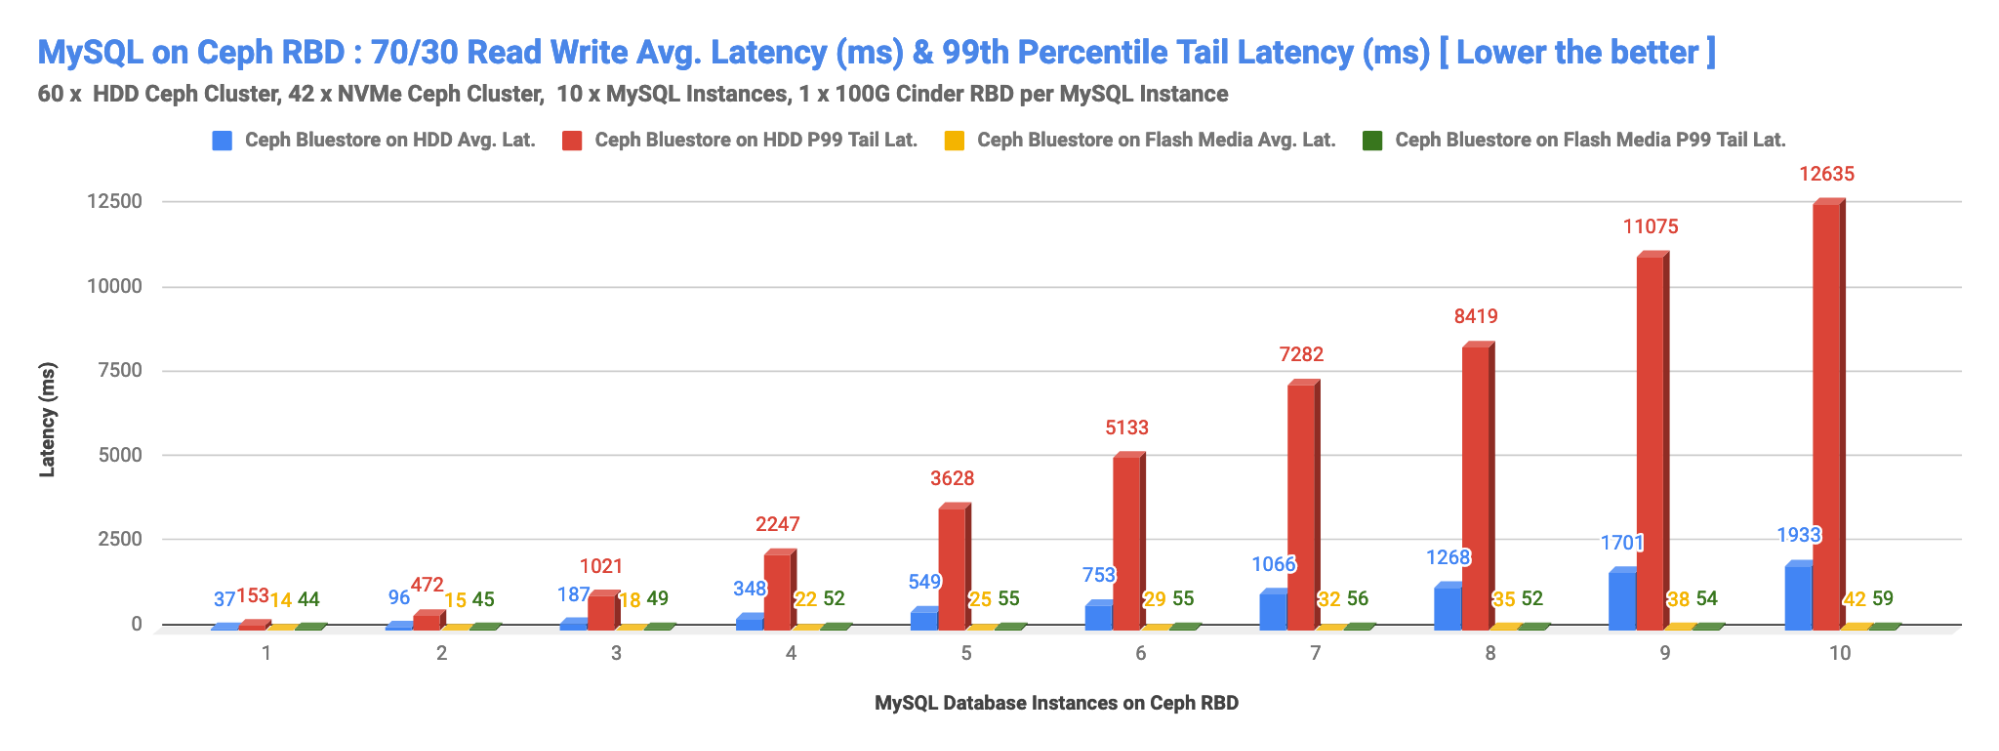 MySQL on Ceph RBD: 70/30 Read Write Average Latency (ms) & 99th Percentile Tail Latency (ms) (Lower the Better)